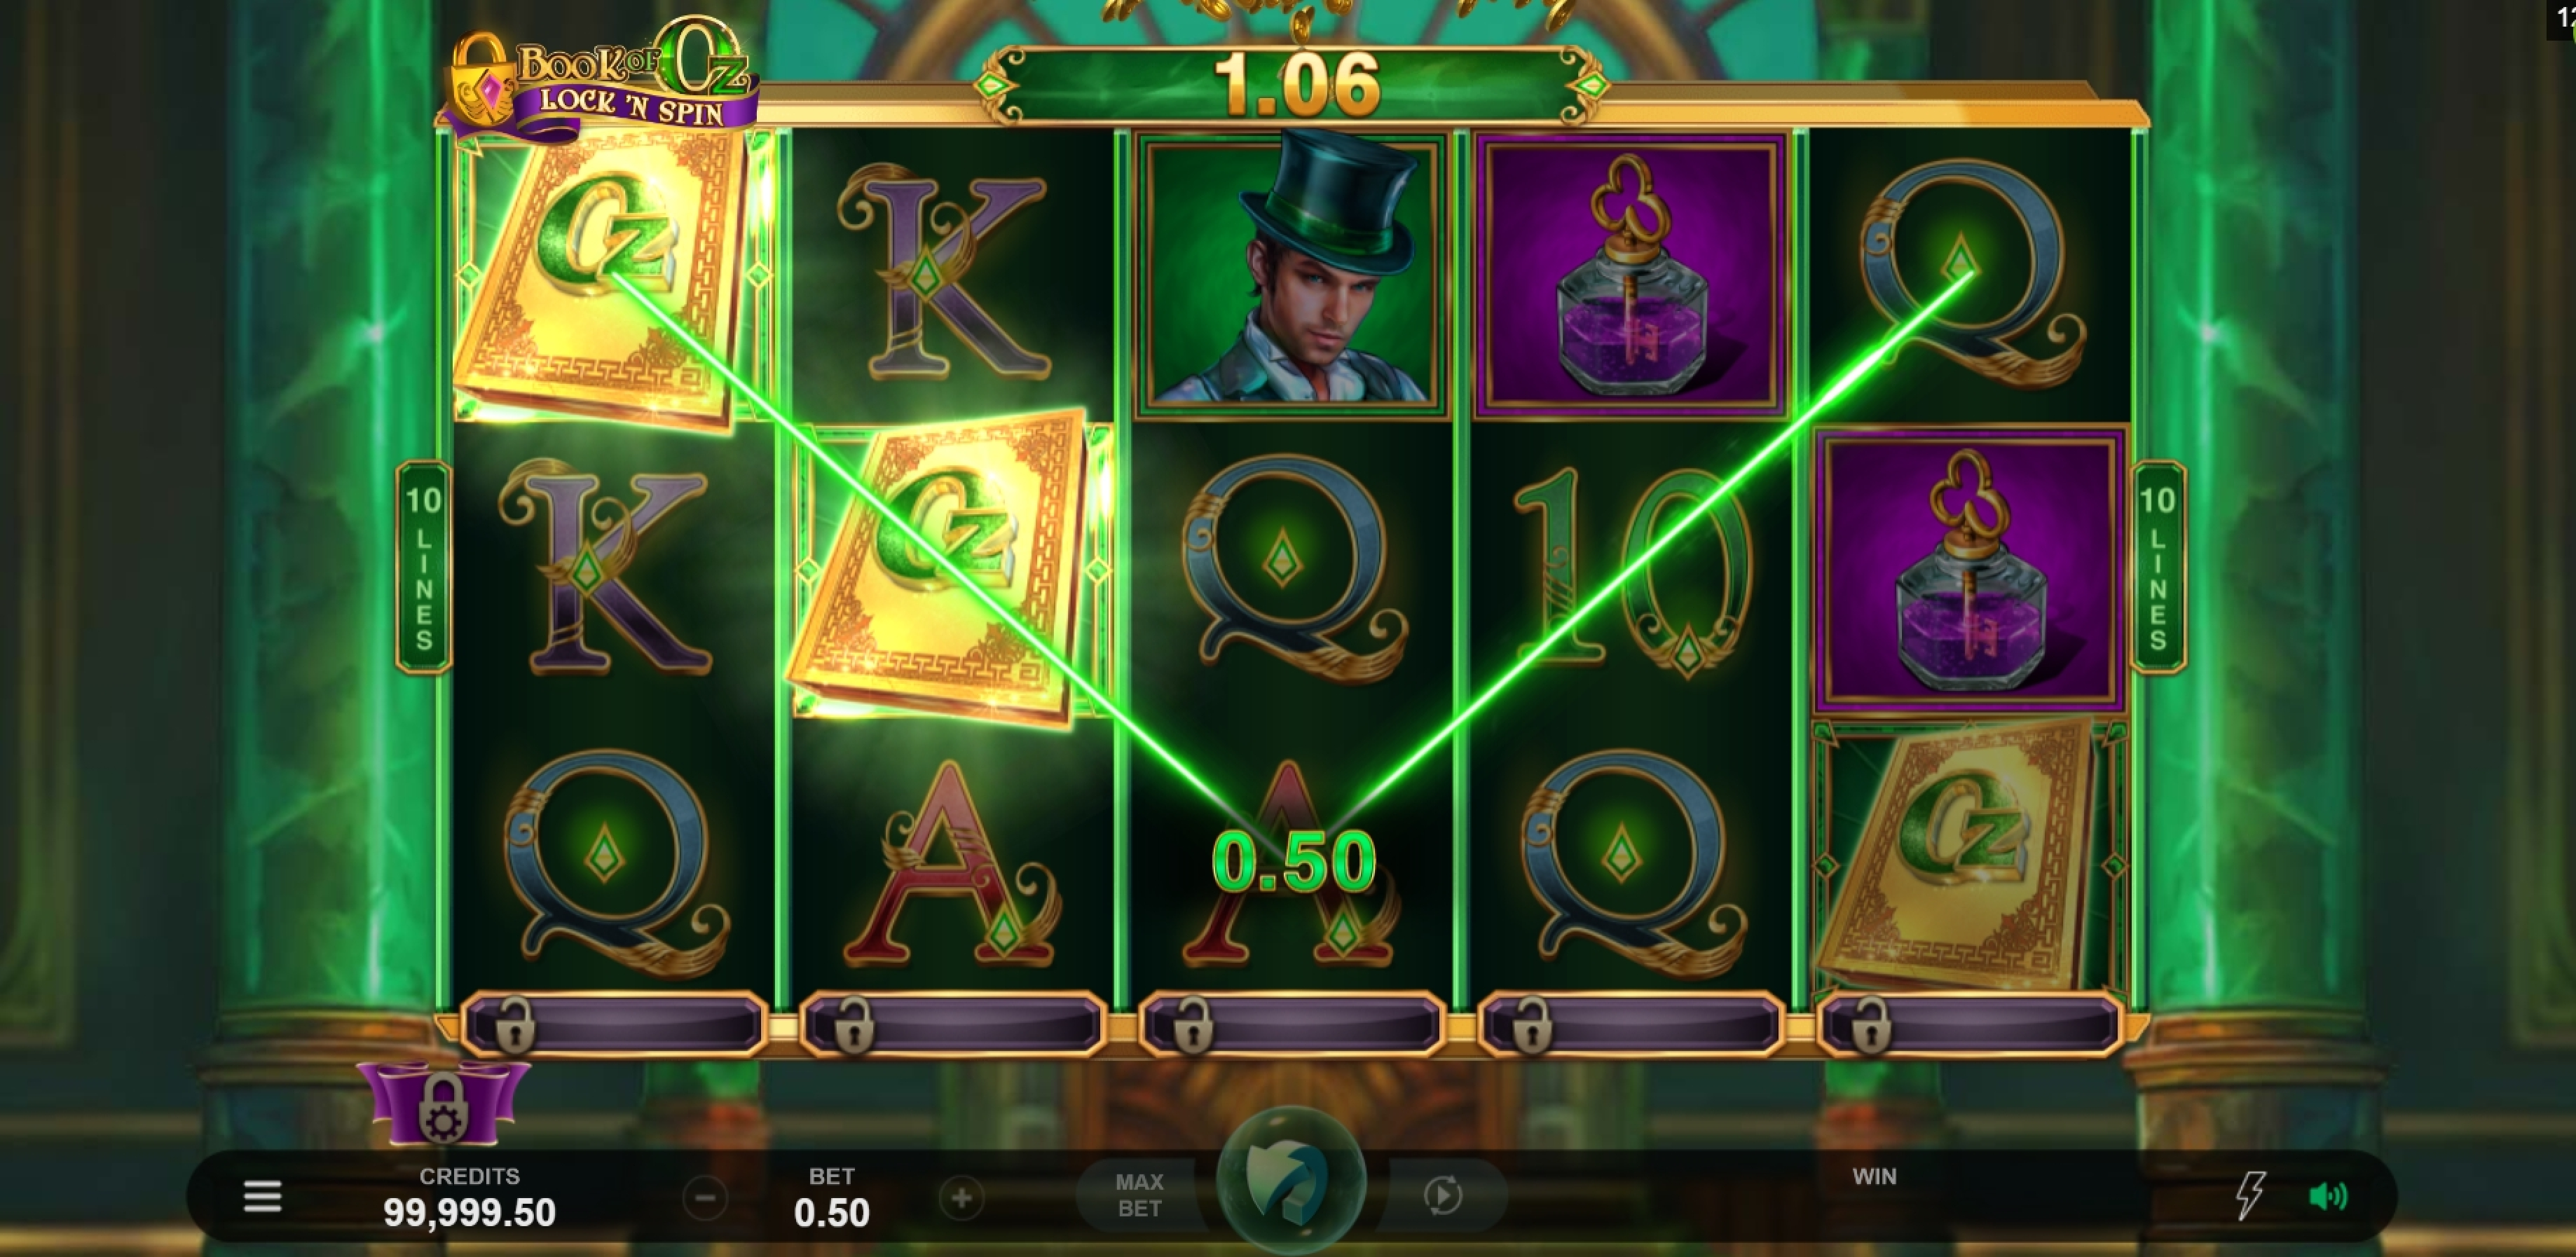 Win Money in Book of Oz Lock 'N Spin Free Slot Game by Triple Edge Studios